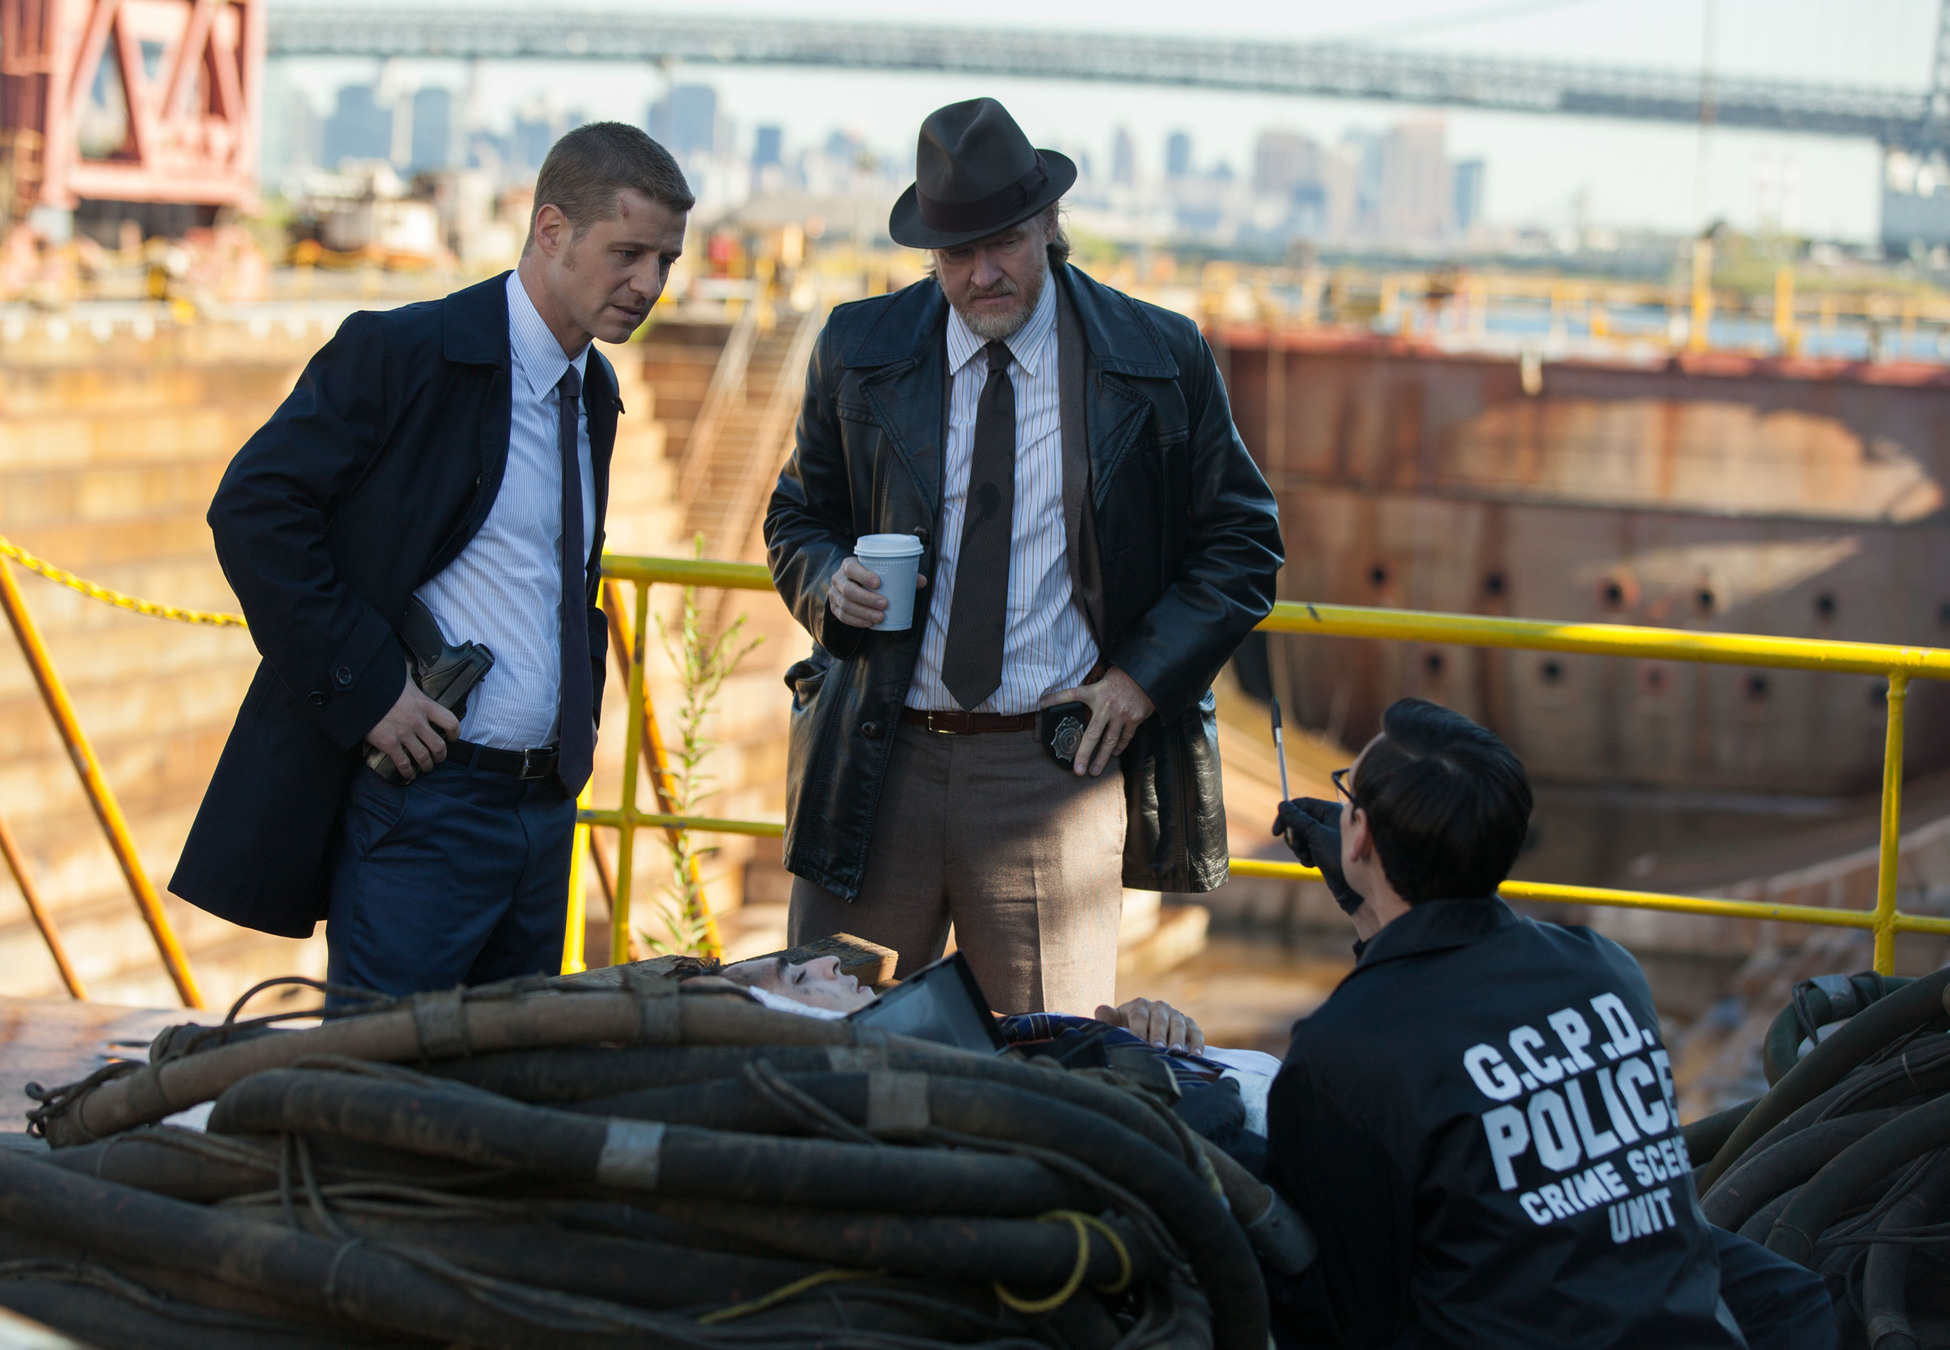 """GOTHAM: Edward Nygma (Cory Michael Smith, R) and Detectives James Gordon (Ben McKenzie, L) and Harvey Bullock (Donal Logue, C) examine a crime scene in the """"The Mask"""" episode of GOTHAM airing Monday, Nov. 10 (8:00-9:00 PM ET/PT) on FOX. ©2014 Fox Broadcasting Co. Cr: Jessica Miglio/FOX"""